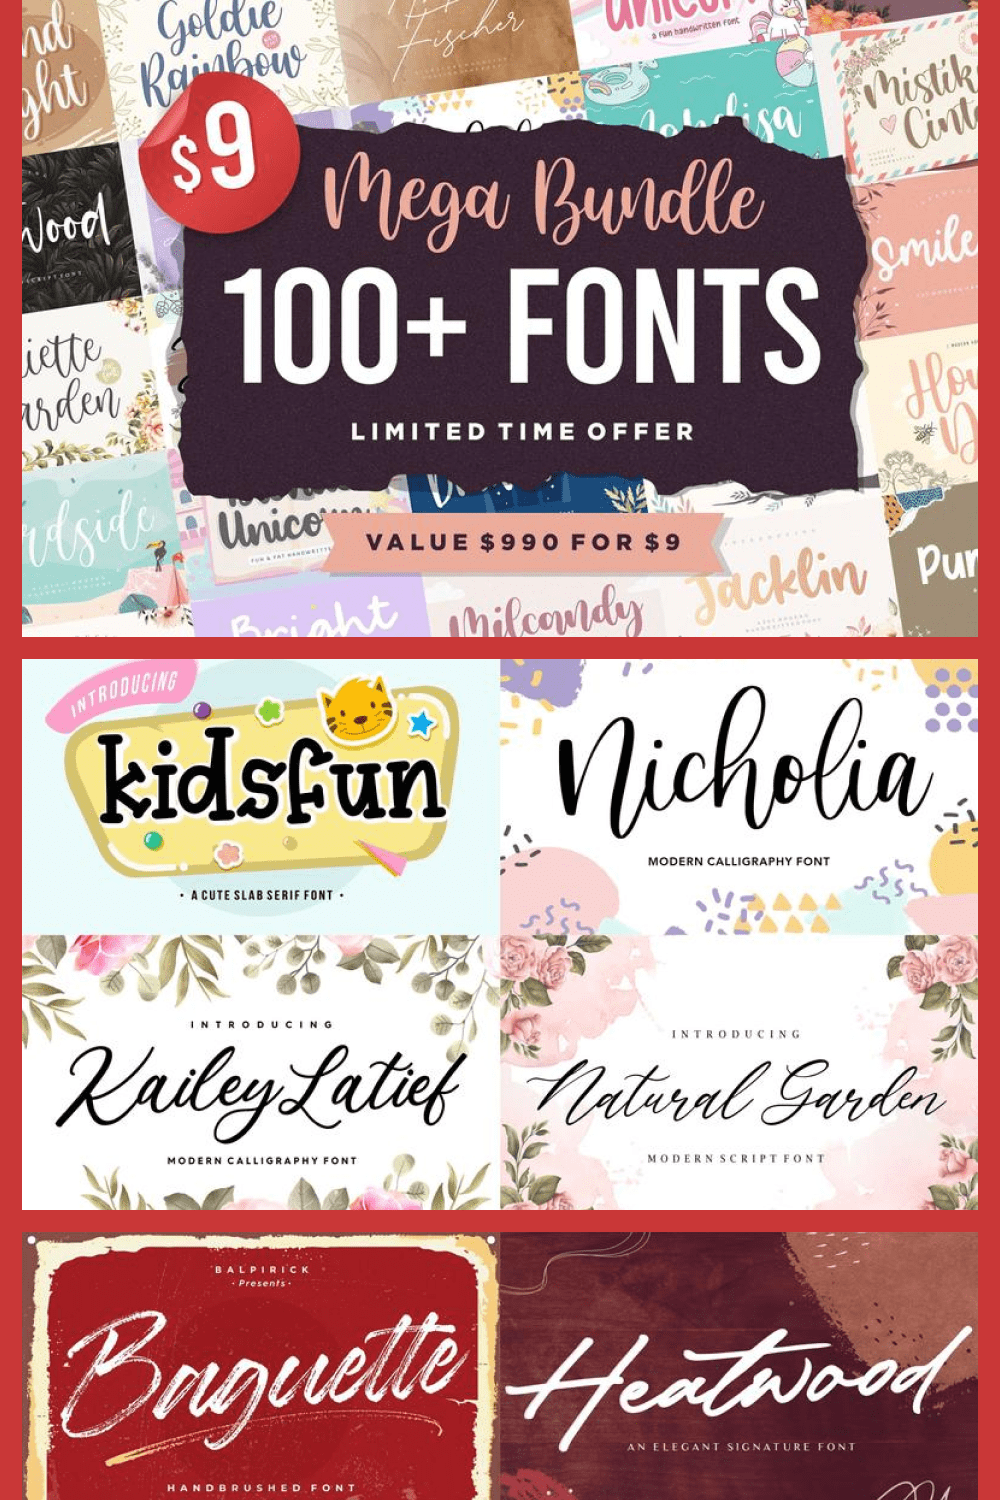 This is a large set of fonts for all occasions.